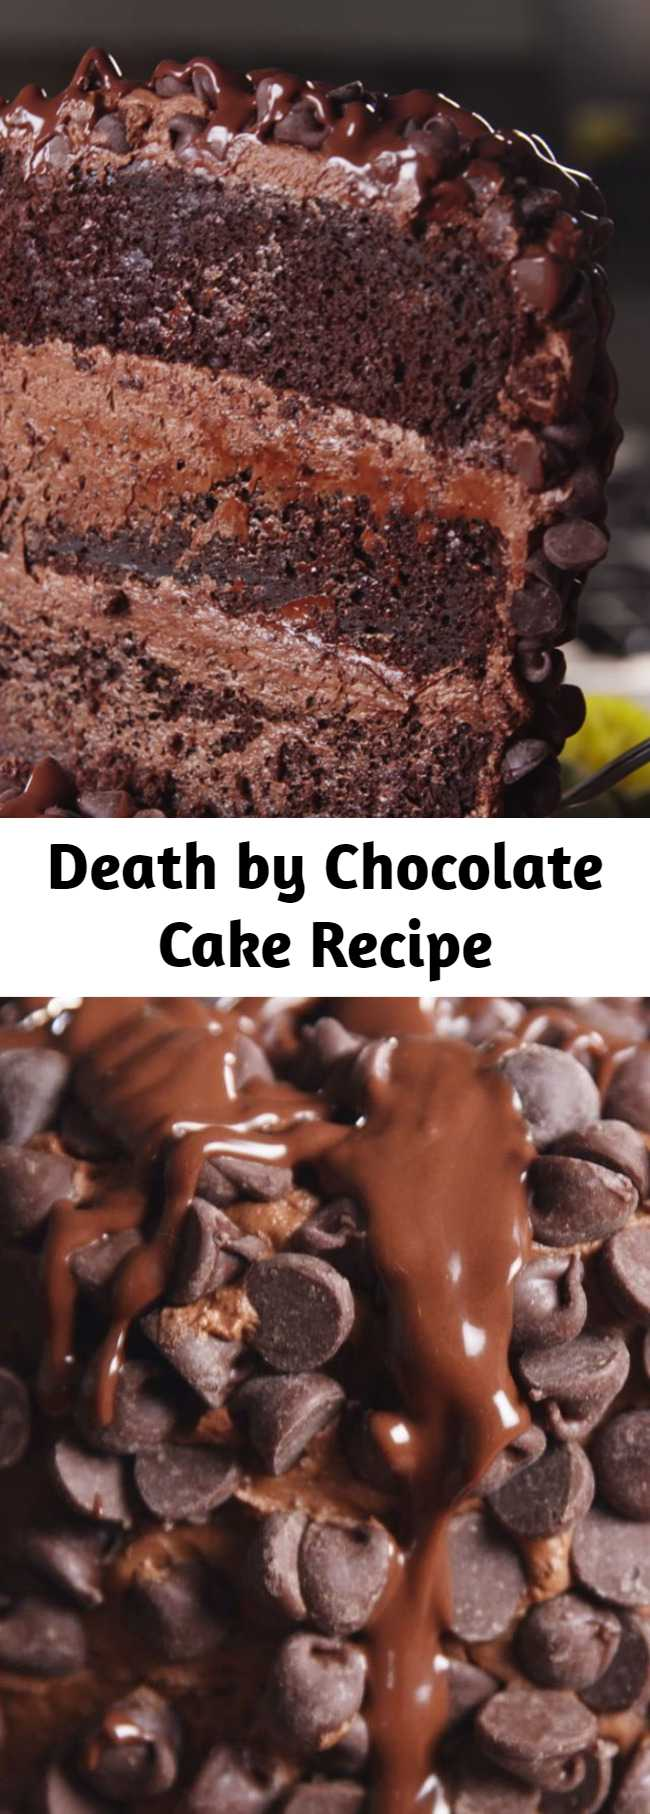 Death by Chocolate Cake Recipe - Death by chocolate cake is layers upon layers of chocolate and the ultimate chocolate dessert. The tallest and proudest cake on the block but there's no need to be intimidated. This cake is easy pull together and will be the greatest show (heart) stopper.